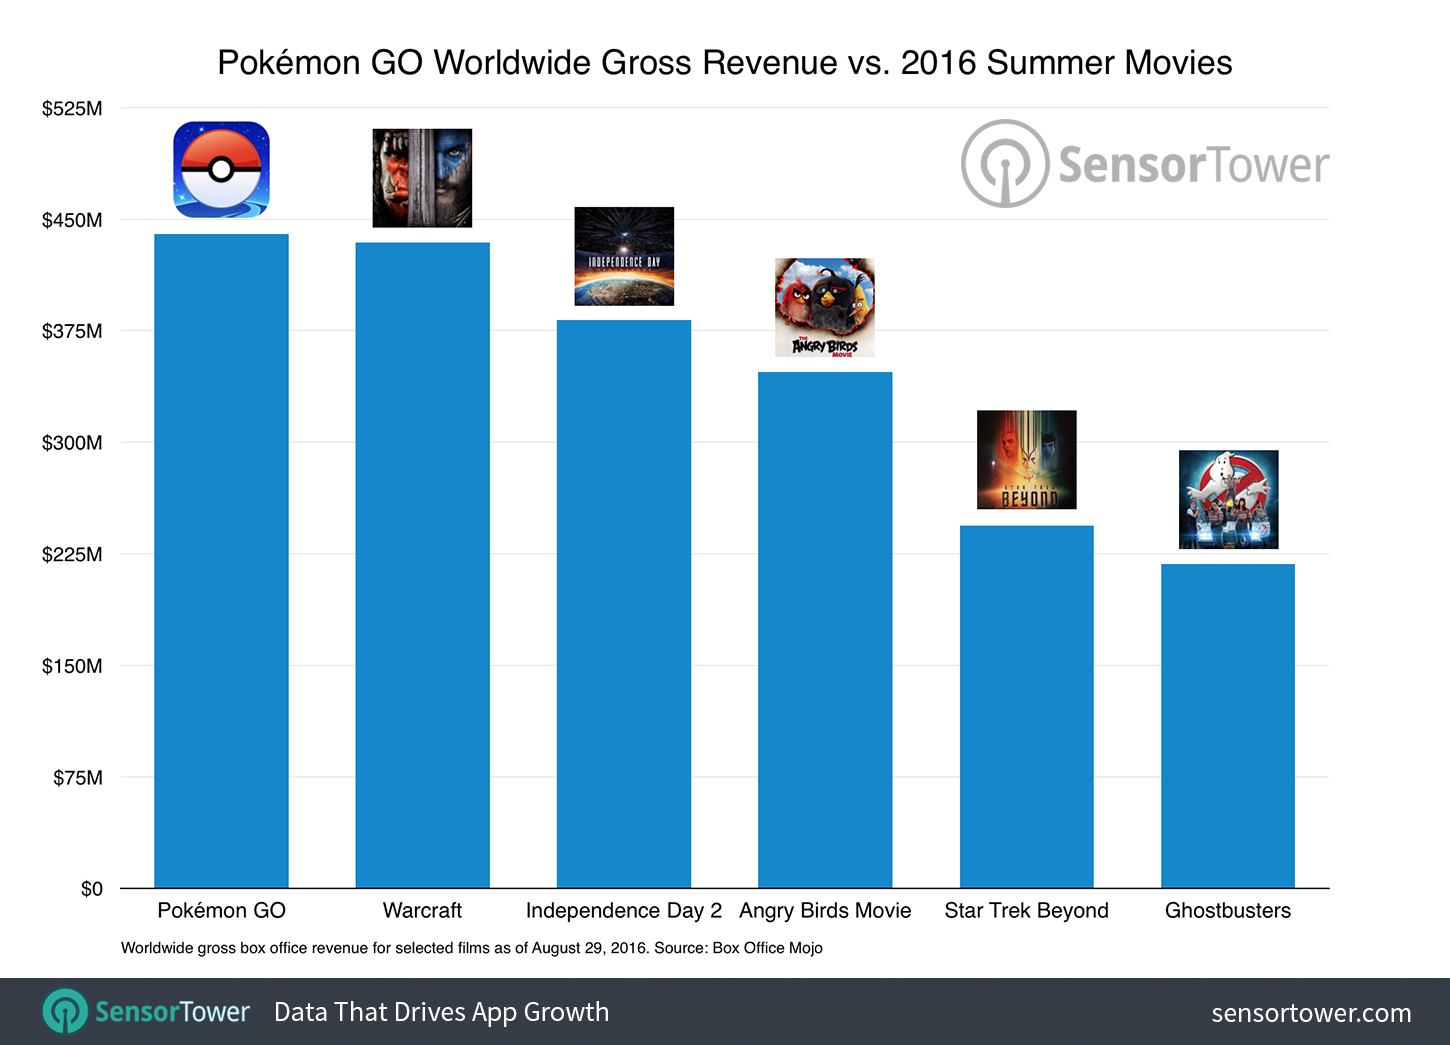 Pokemon GO Worldwide Gross Revenue Compared to 2016 Summer Movie Box Office Earnings